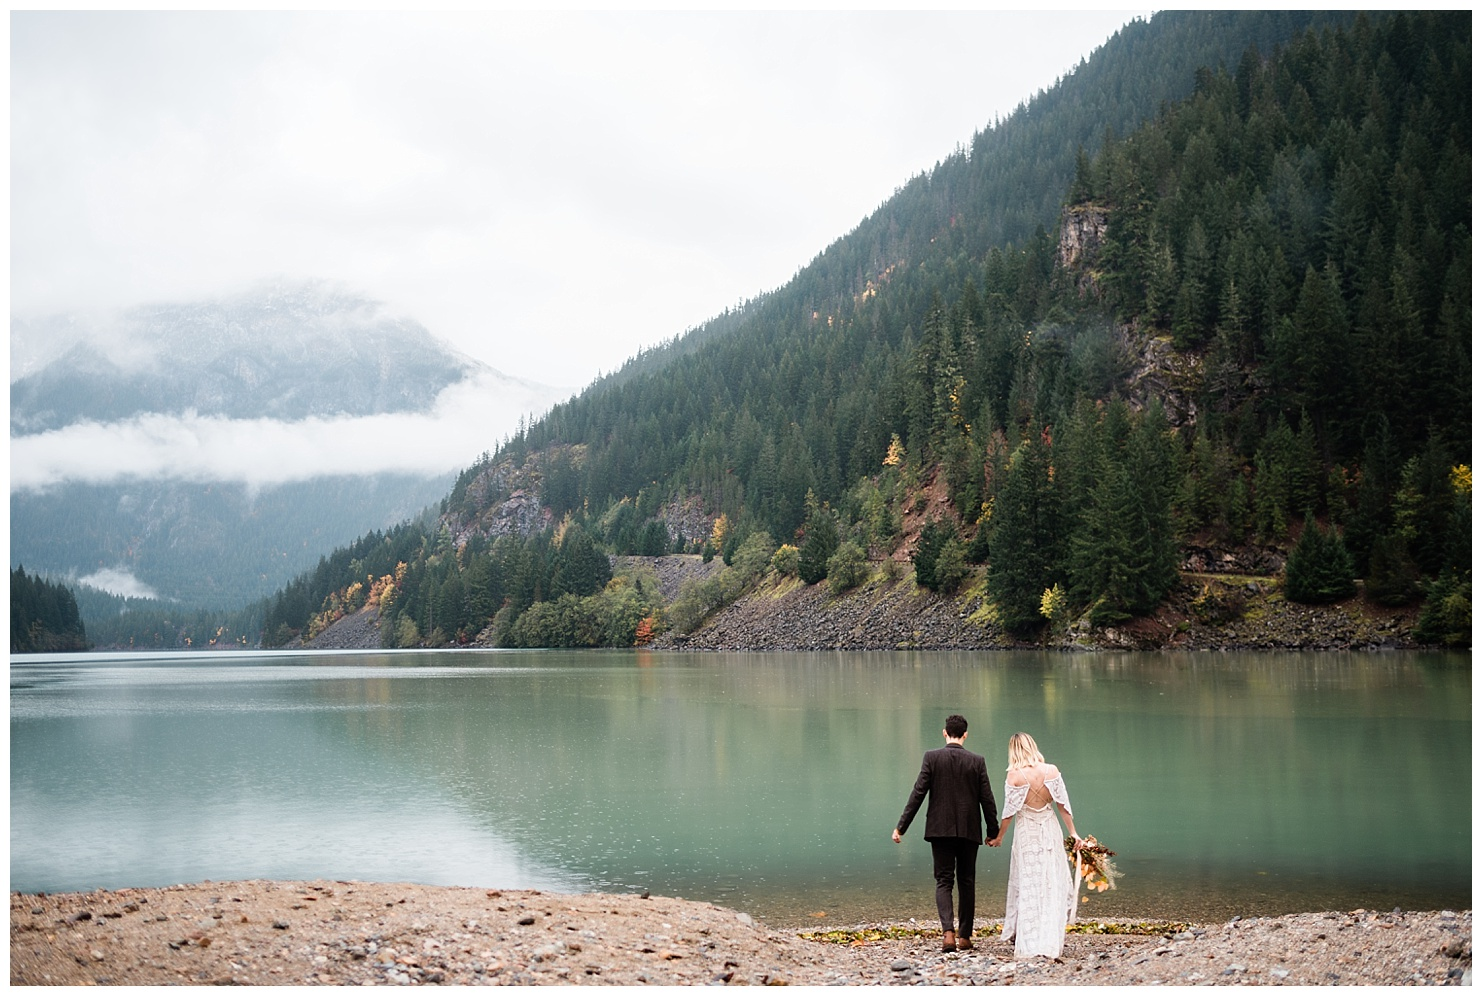 Diablo Lake Bridal Session by Forthright Photo, washington wedding photographers